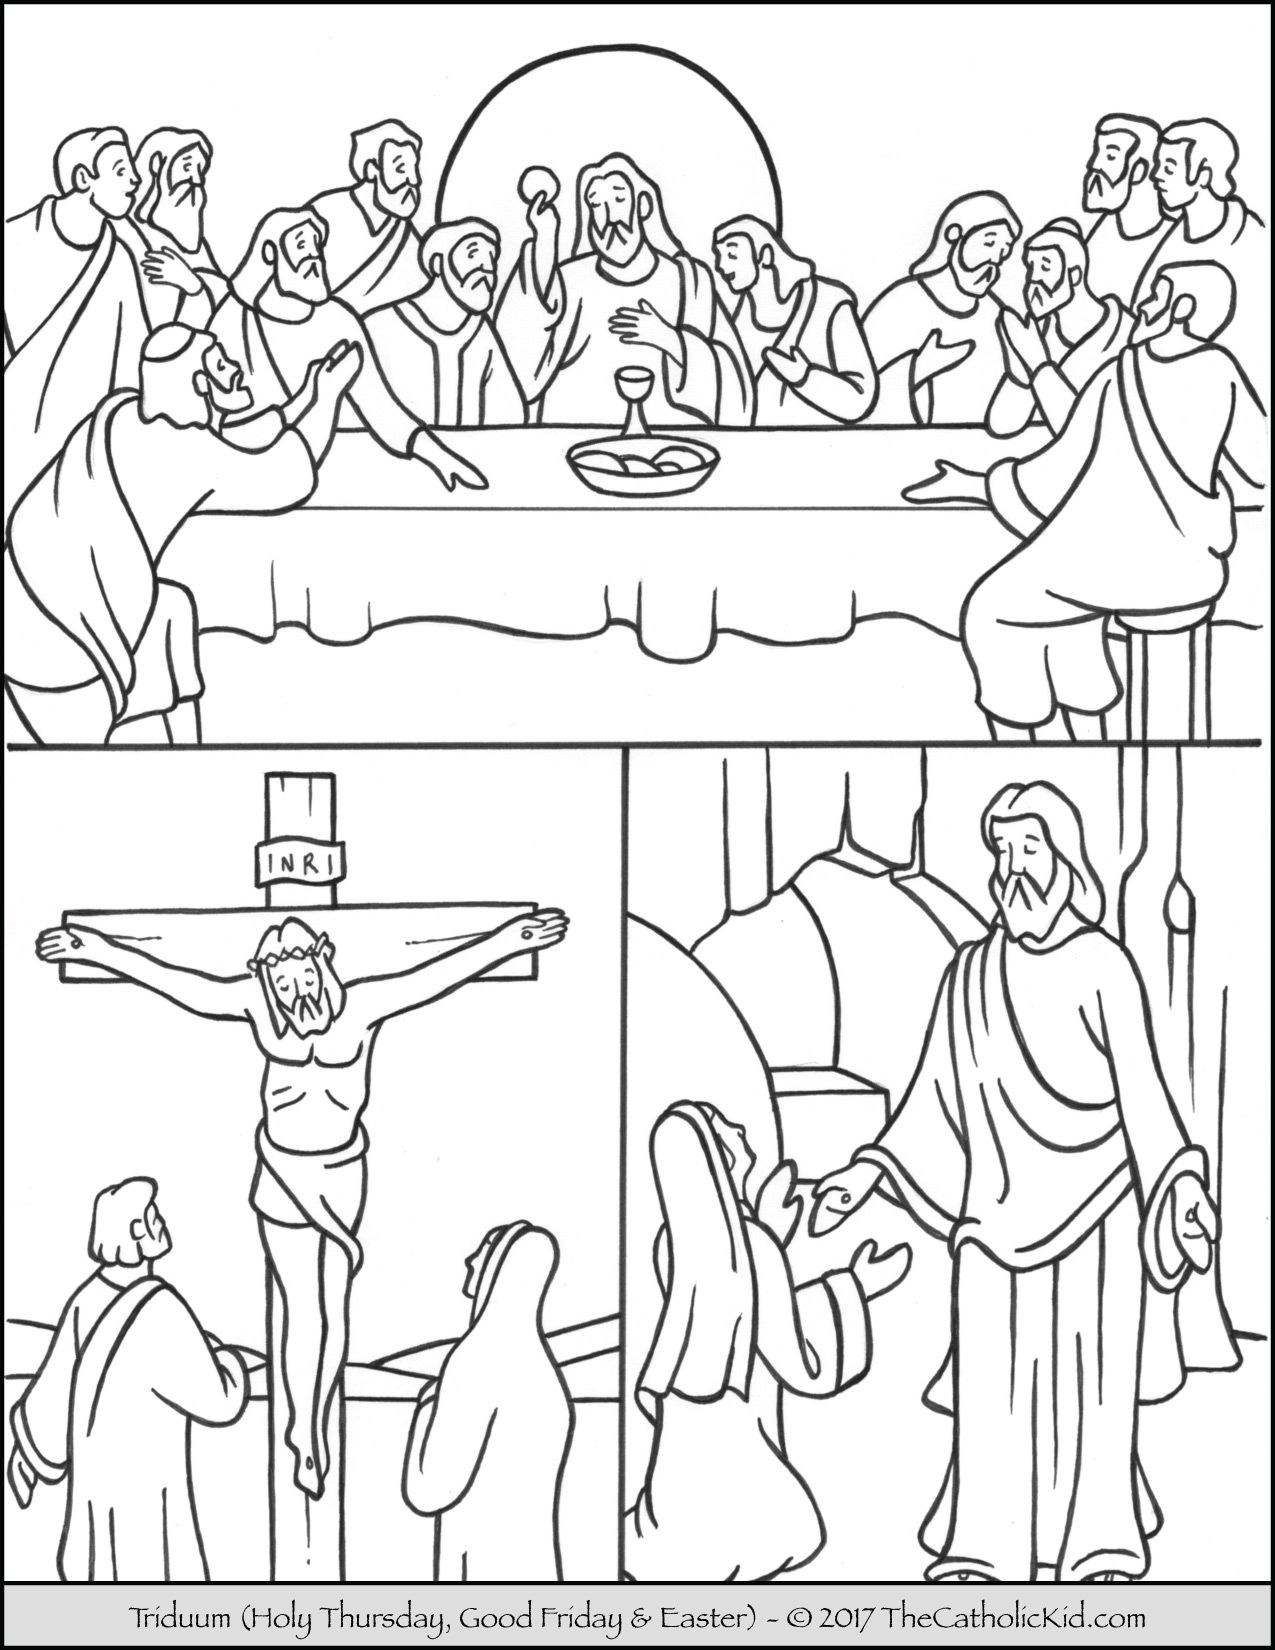 Childrens liturgy colouring pages - Childrens Liturgy Coloring Pages Help Children Learn The Tridumm With This Coloring Page From The